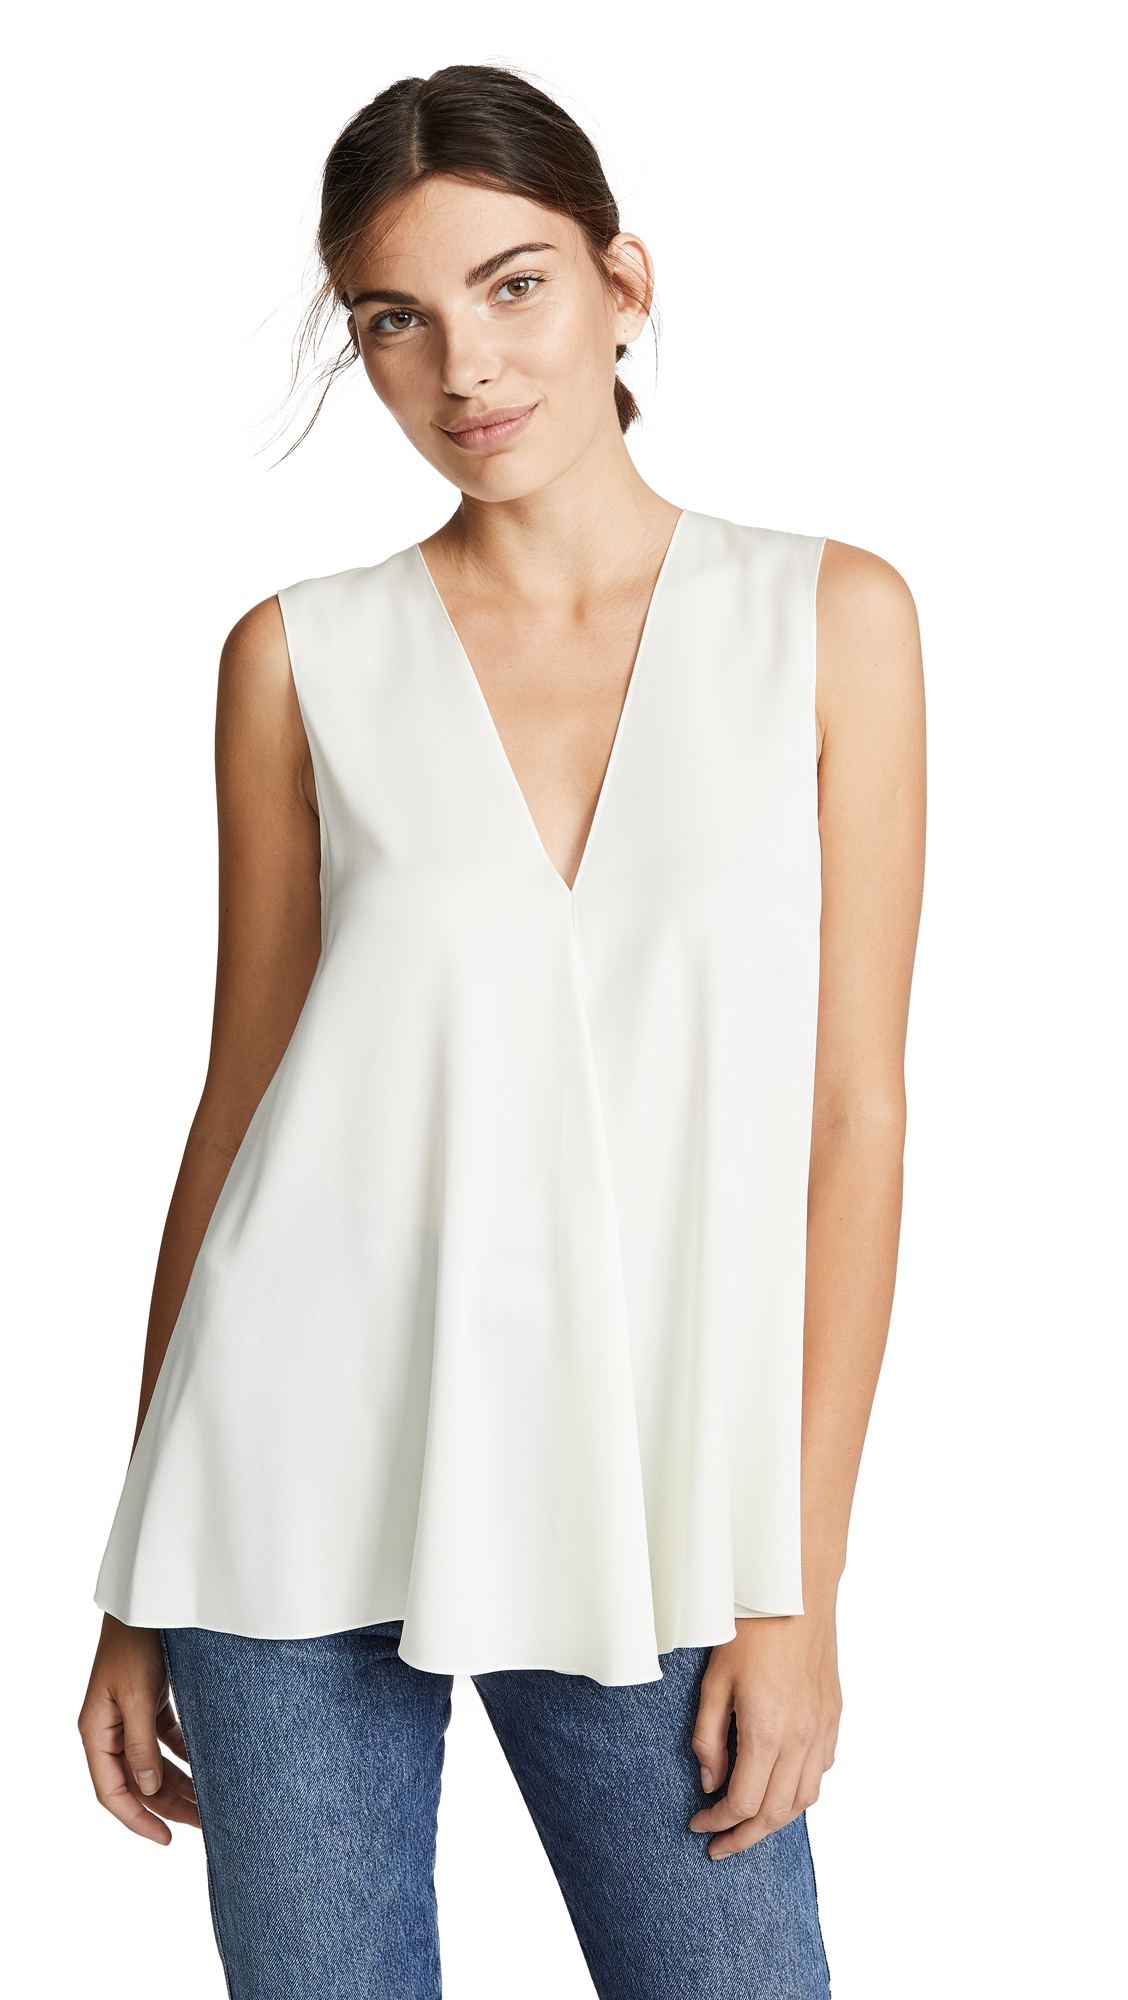 Theory V Neck A-Line Top - Ivory